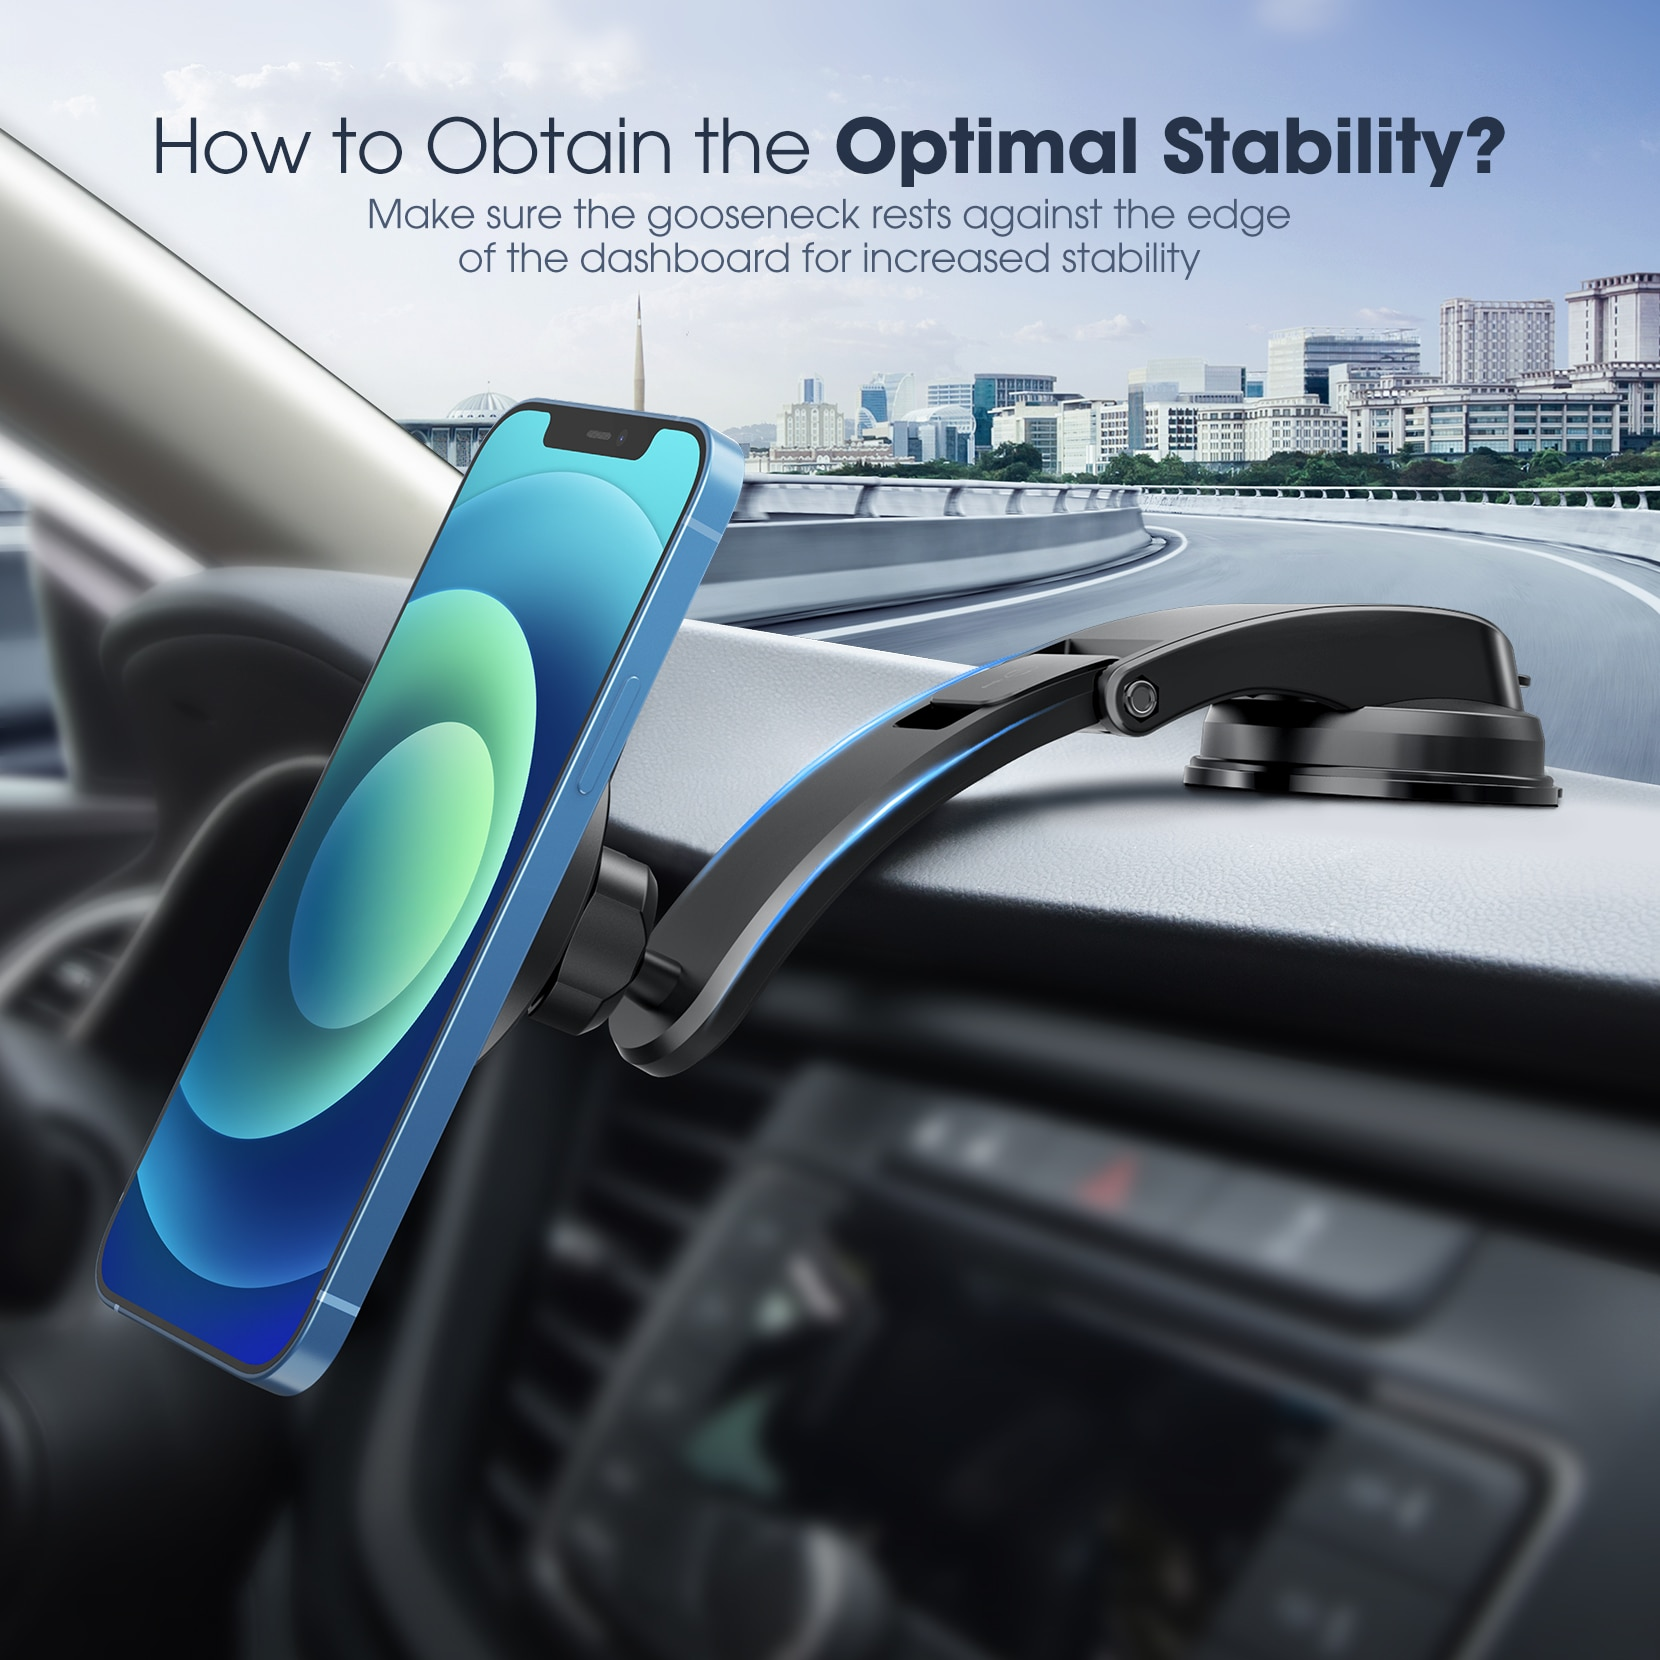 H315f2dc4654341808a7bd06b2d27146eW - MPOW CA171 Magnetic Phone Car Mount Dashboard Car Phone Mount Holder Strong Magnet Phone Mount for Car Compatible with iPhone